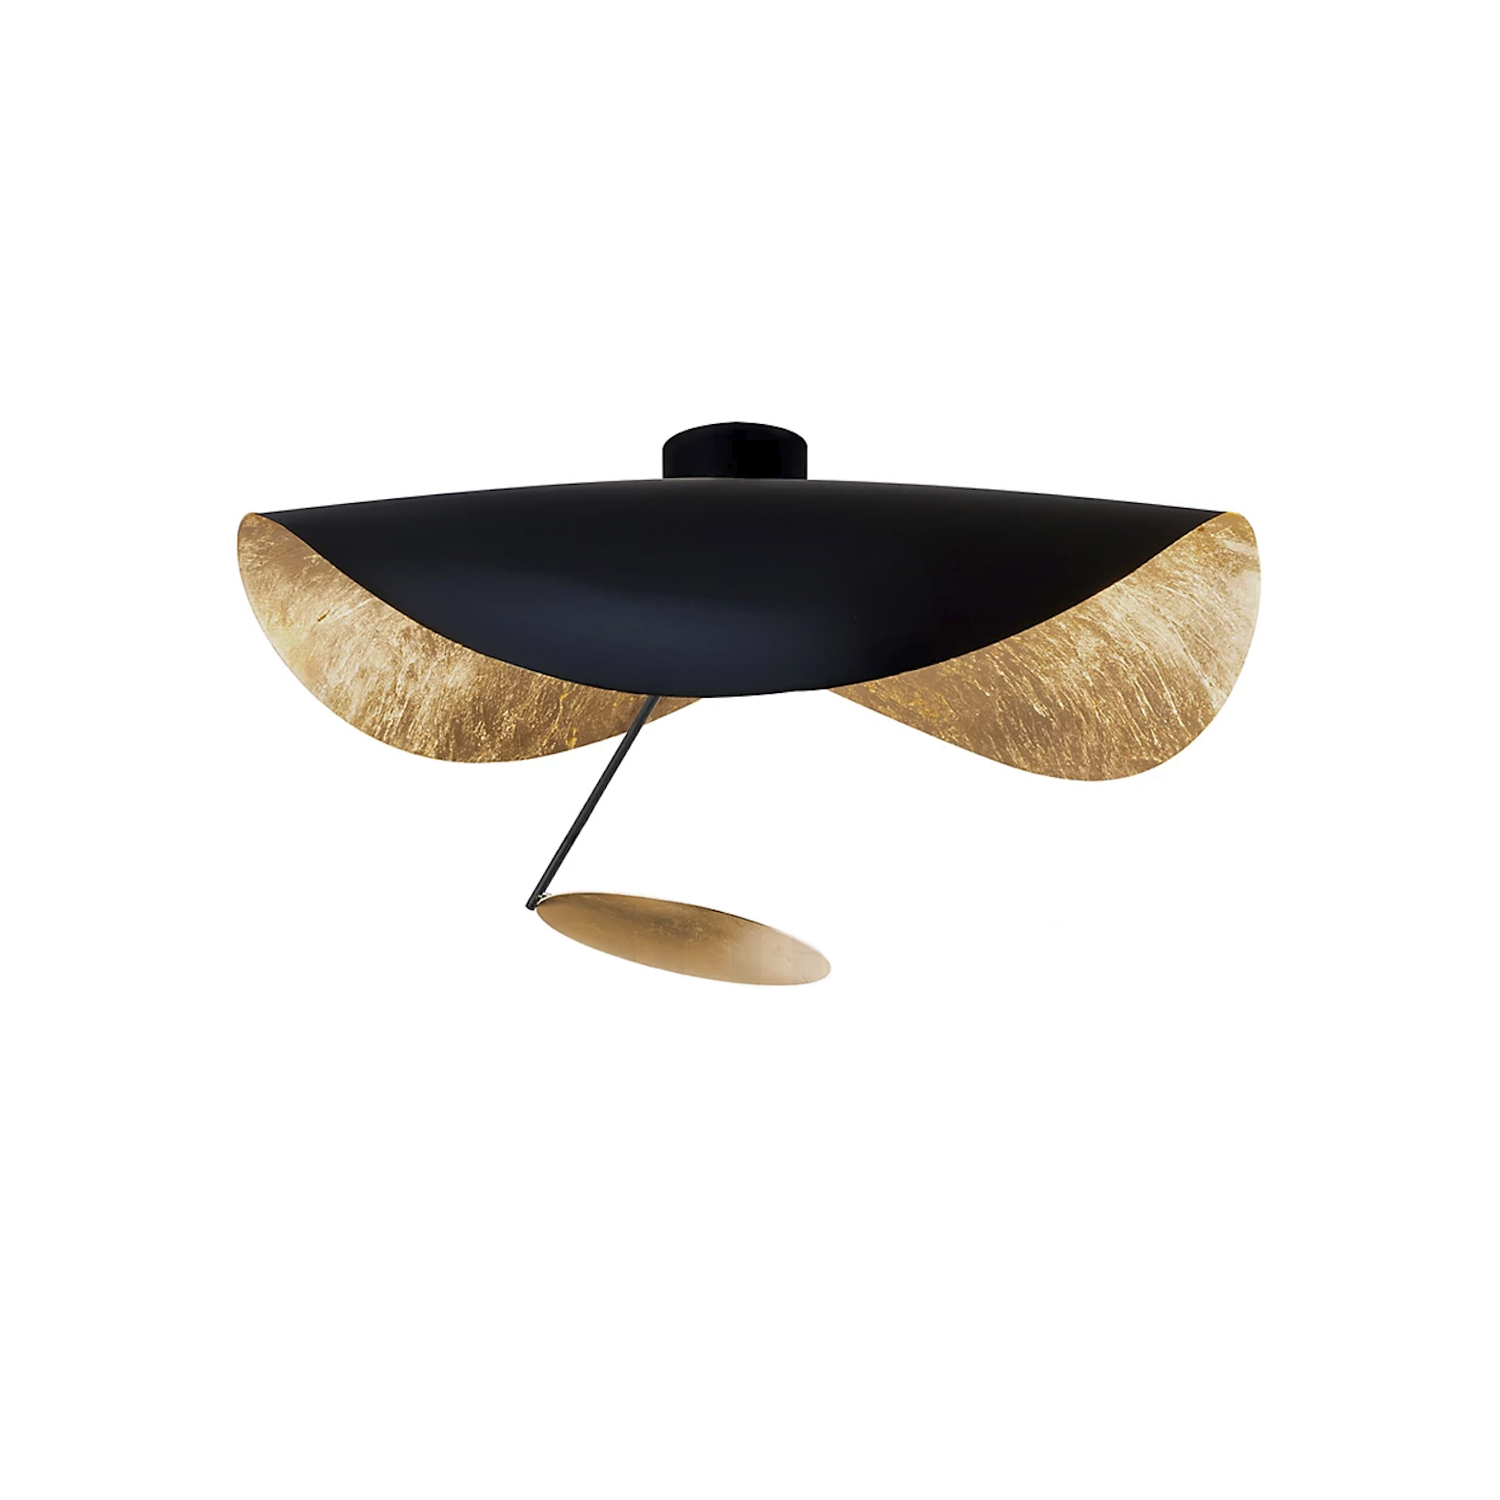 Lederam Manta CWS1 Wall/ Ceiling Lamp - Lederam embodies the accuracy of the motion required to draw a line. The warm, softly coloured disks surround a LED module with an ultra-flat shape, which creates thin lamps and suspended forms with curved, sinuous lines. | Matter of Stuff